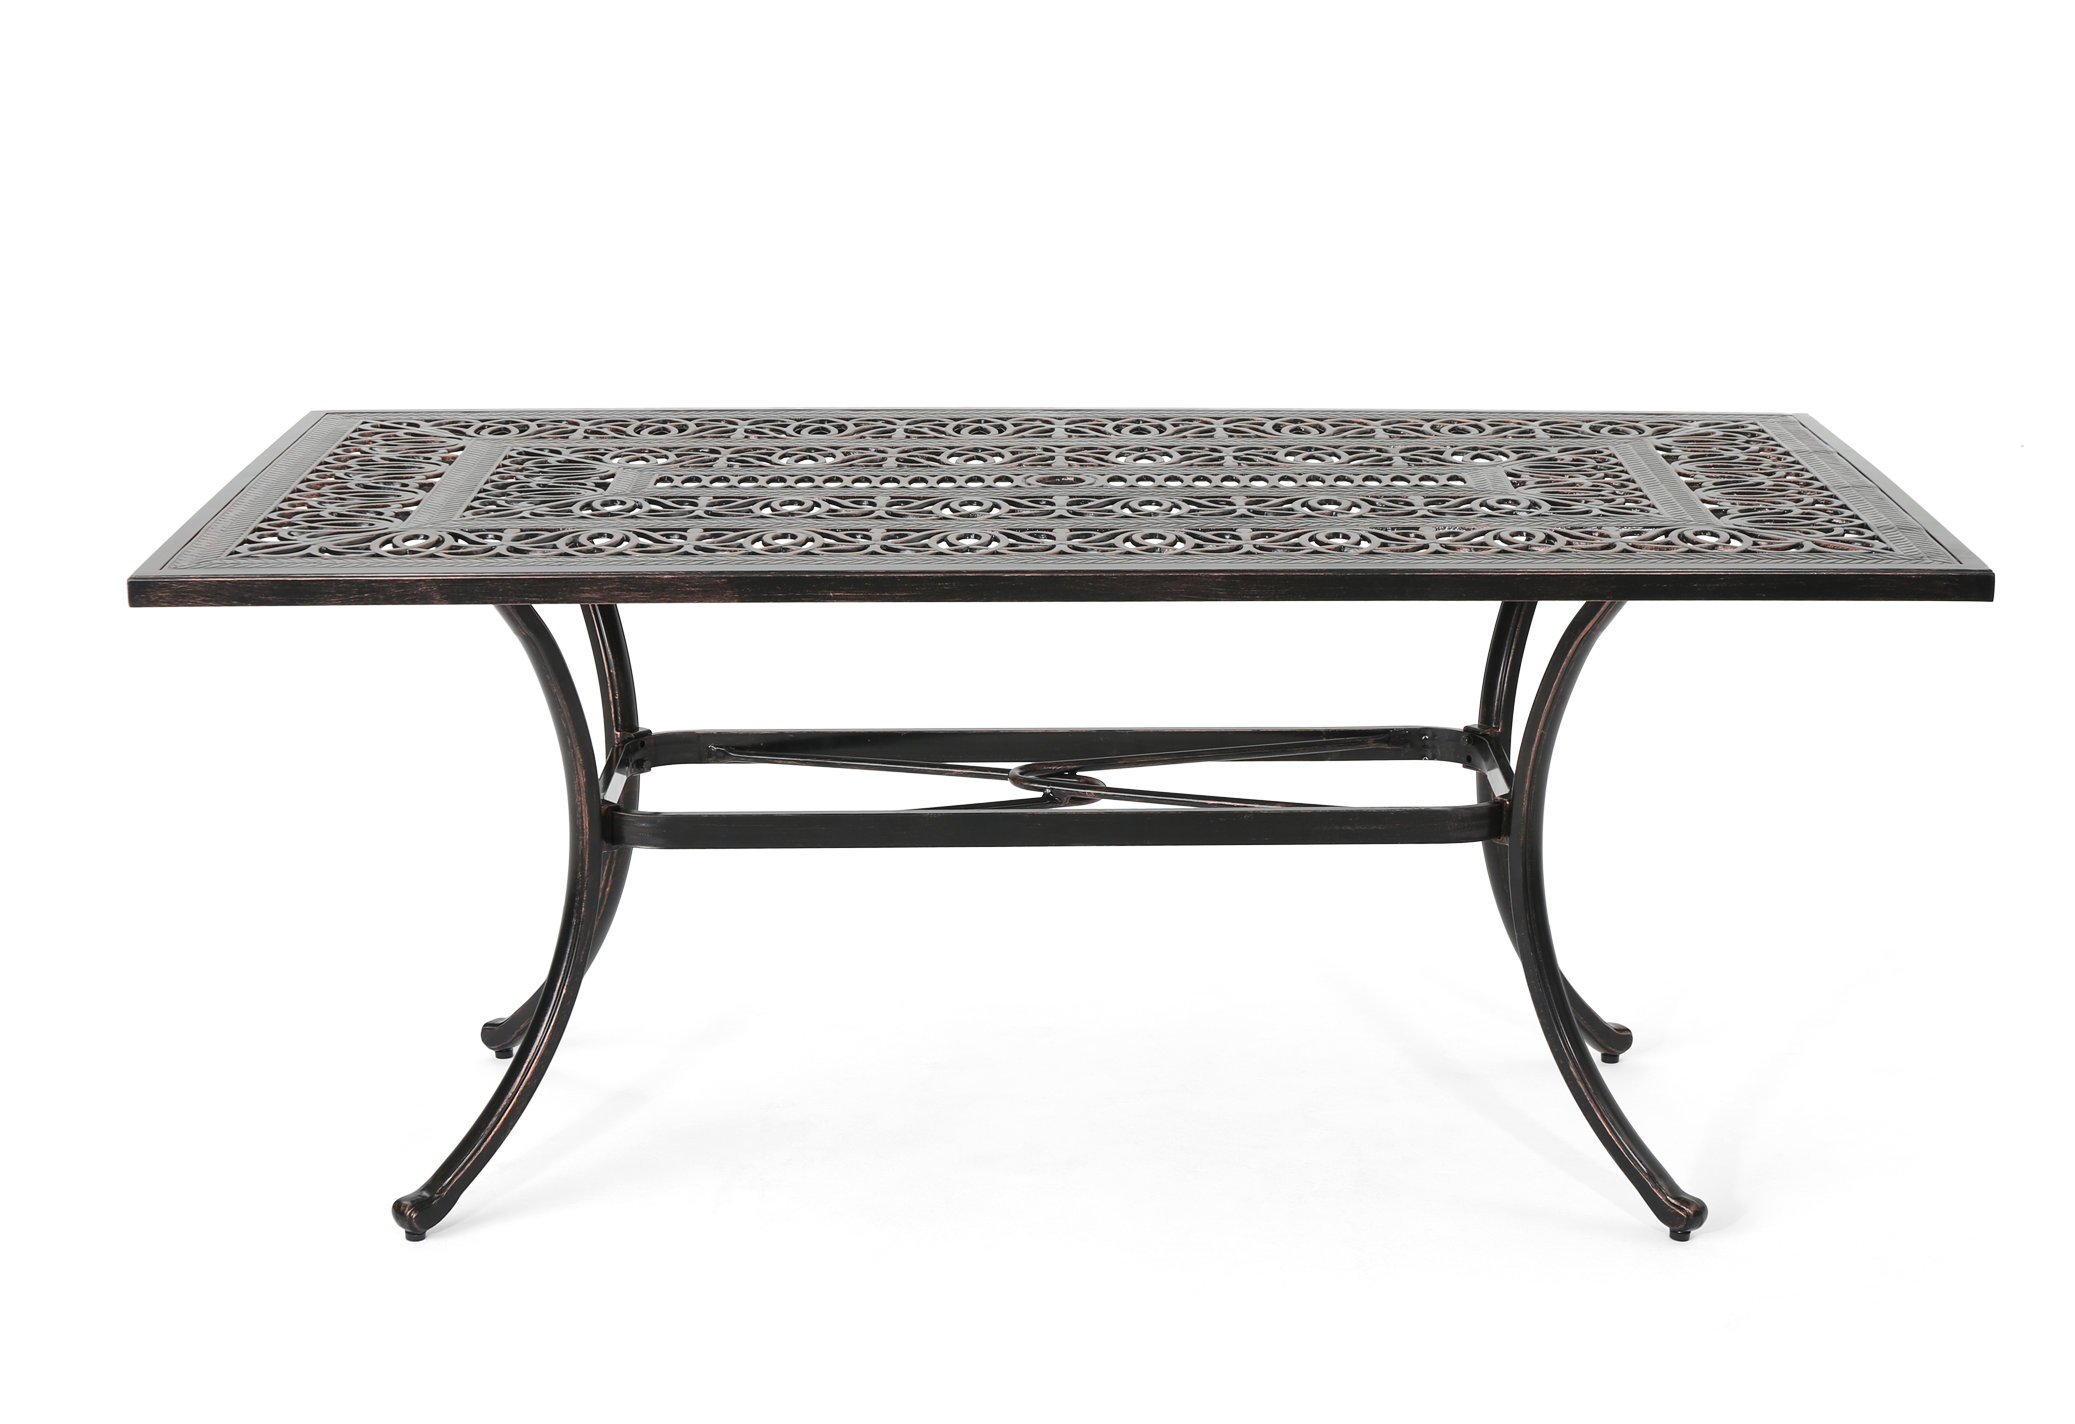 bloomsbury market stein metal dining table tibetan drum accent black glass living room tables drop leaf console modern furniture reproductions teak standard height sofa end